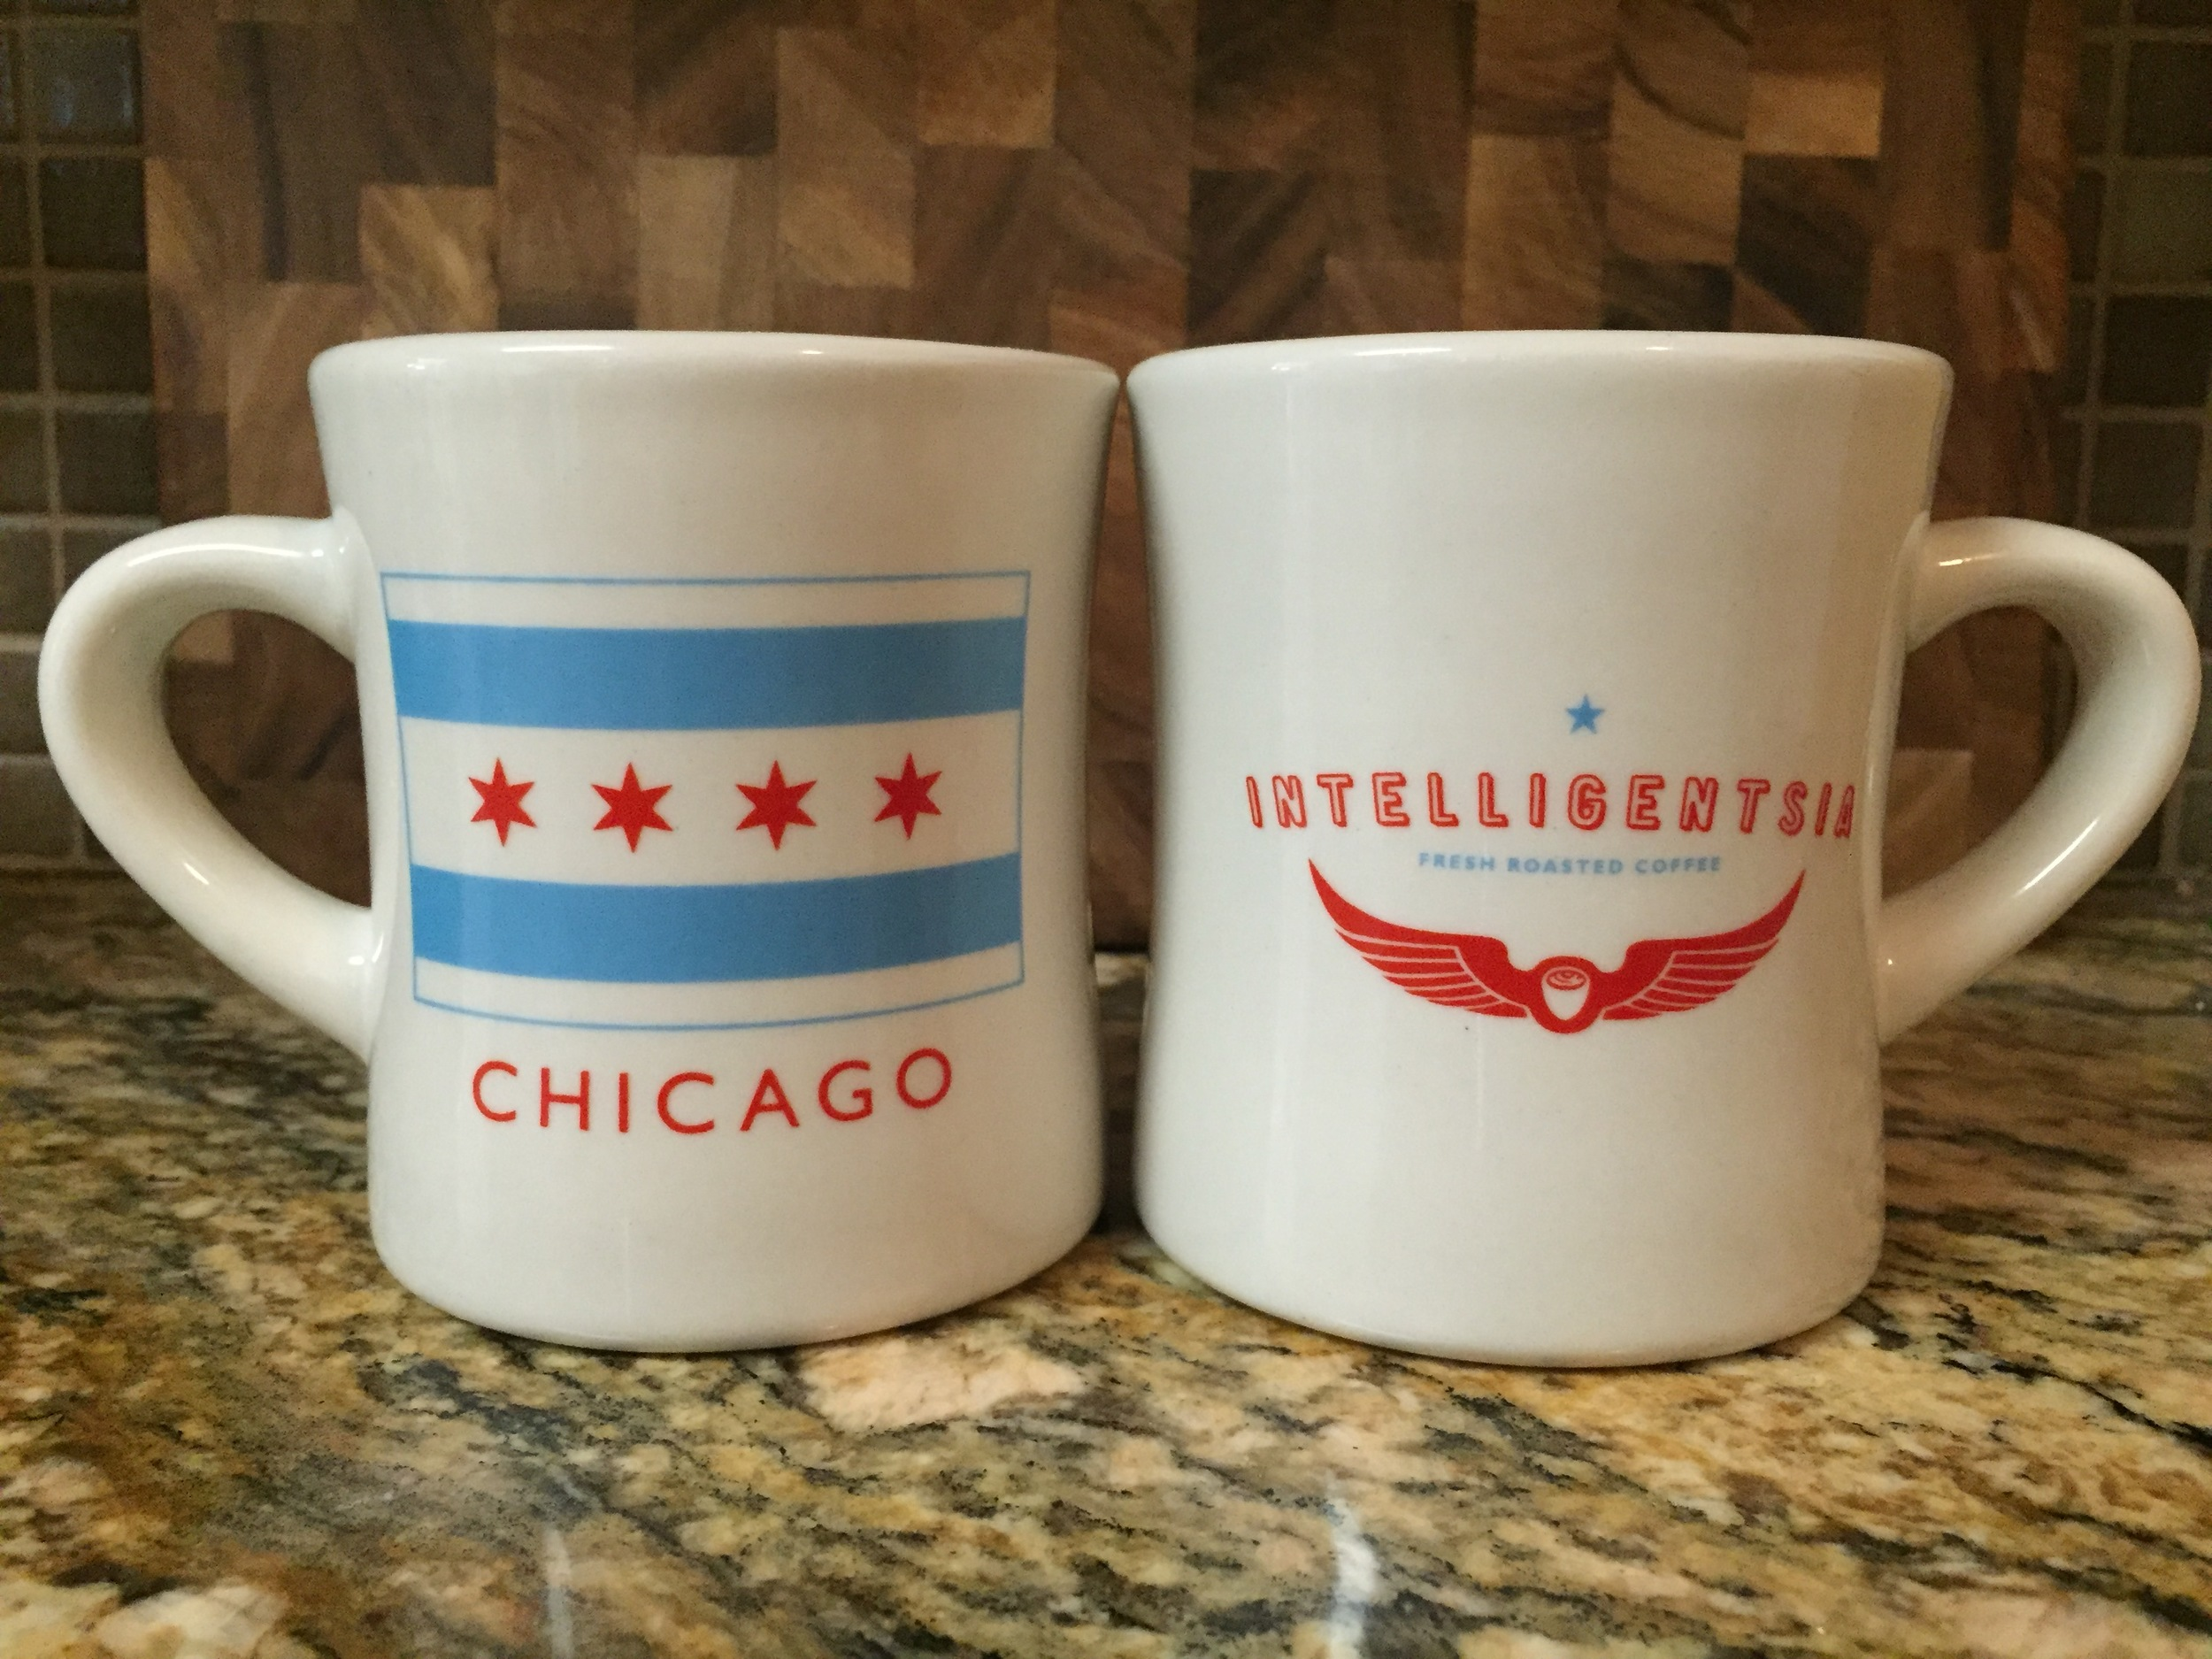 The dinner mug is thick, well insulated, and a great shape. These from Intelligentsia Coffee made for a great gift. Click through for more info.